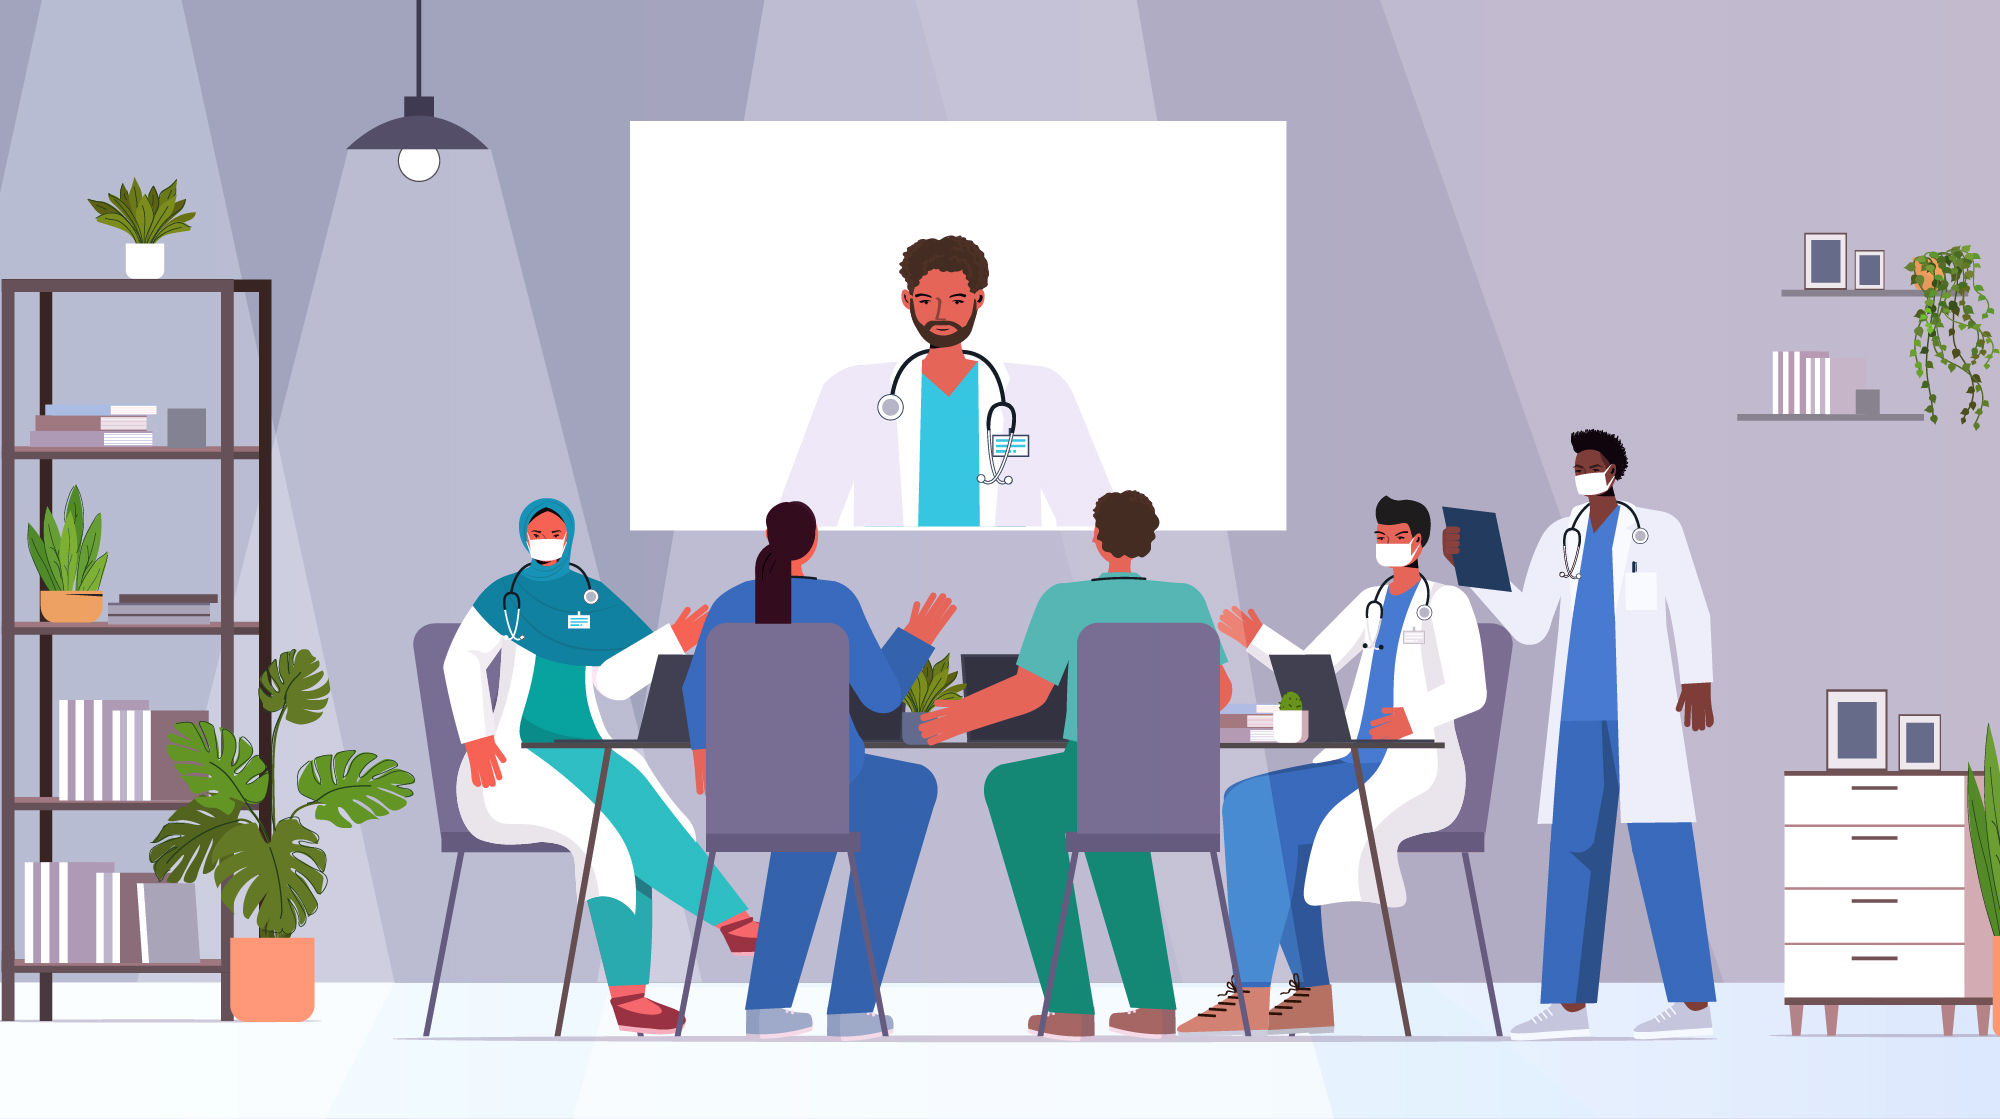 Differentiating Among Medical Practice Settings